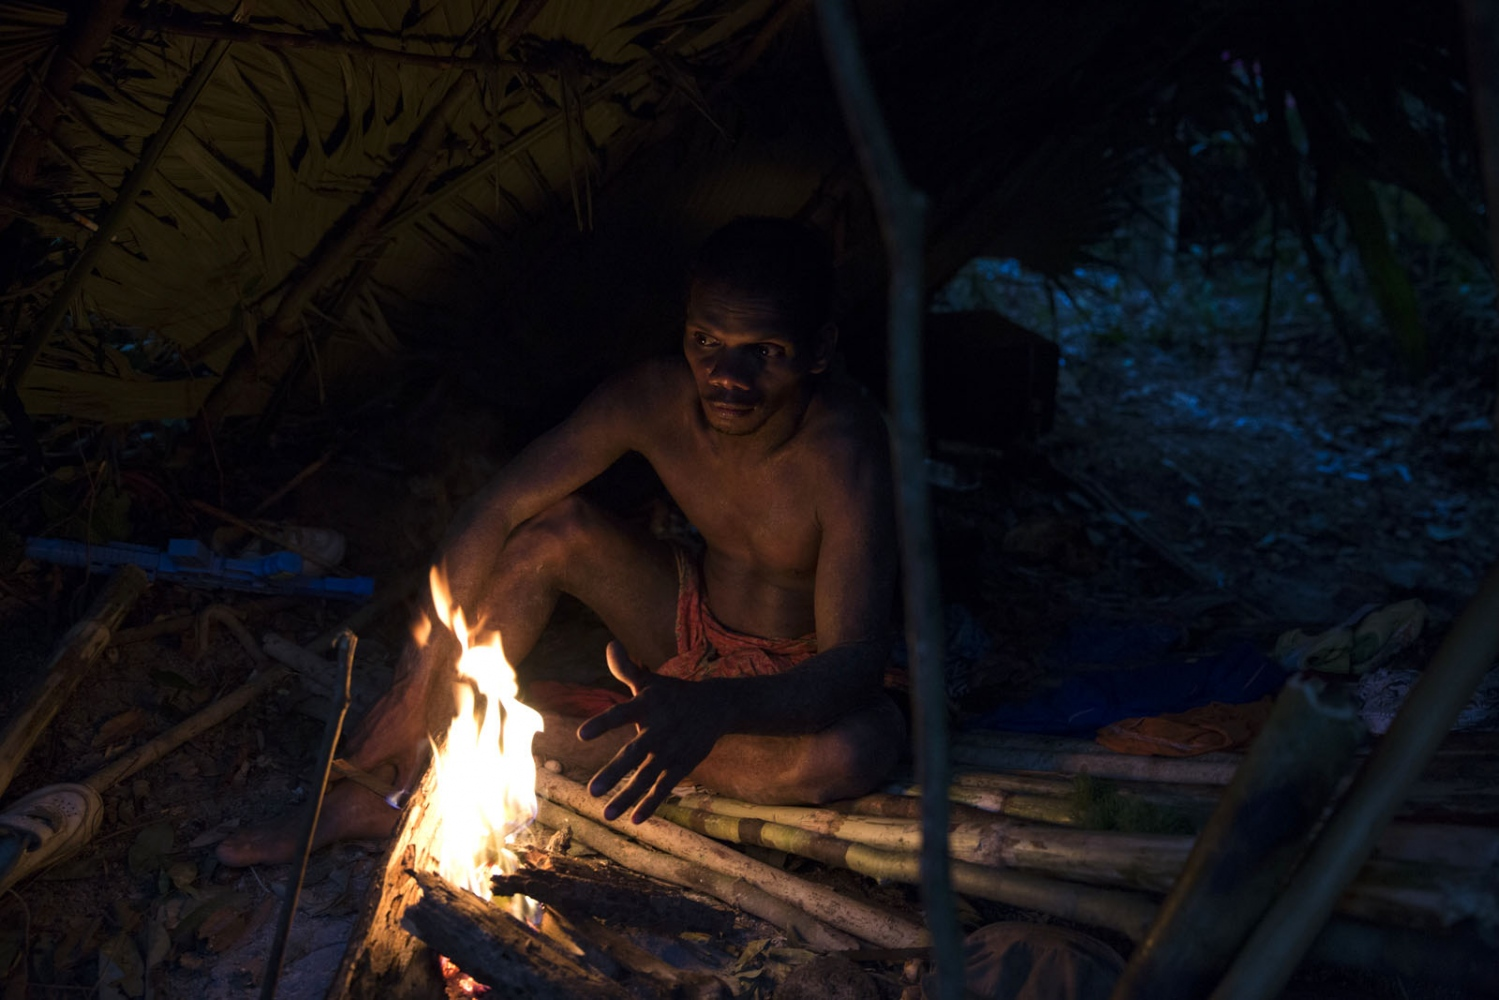 A Maniq man sits in his shelter at dusk. Many keep a fire burning inside their shelter 24 hours a day to indicate that it is occupied.  Pattalung - September 2016